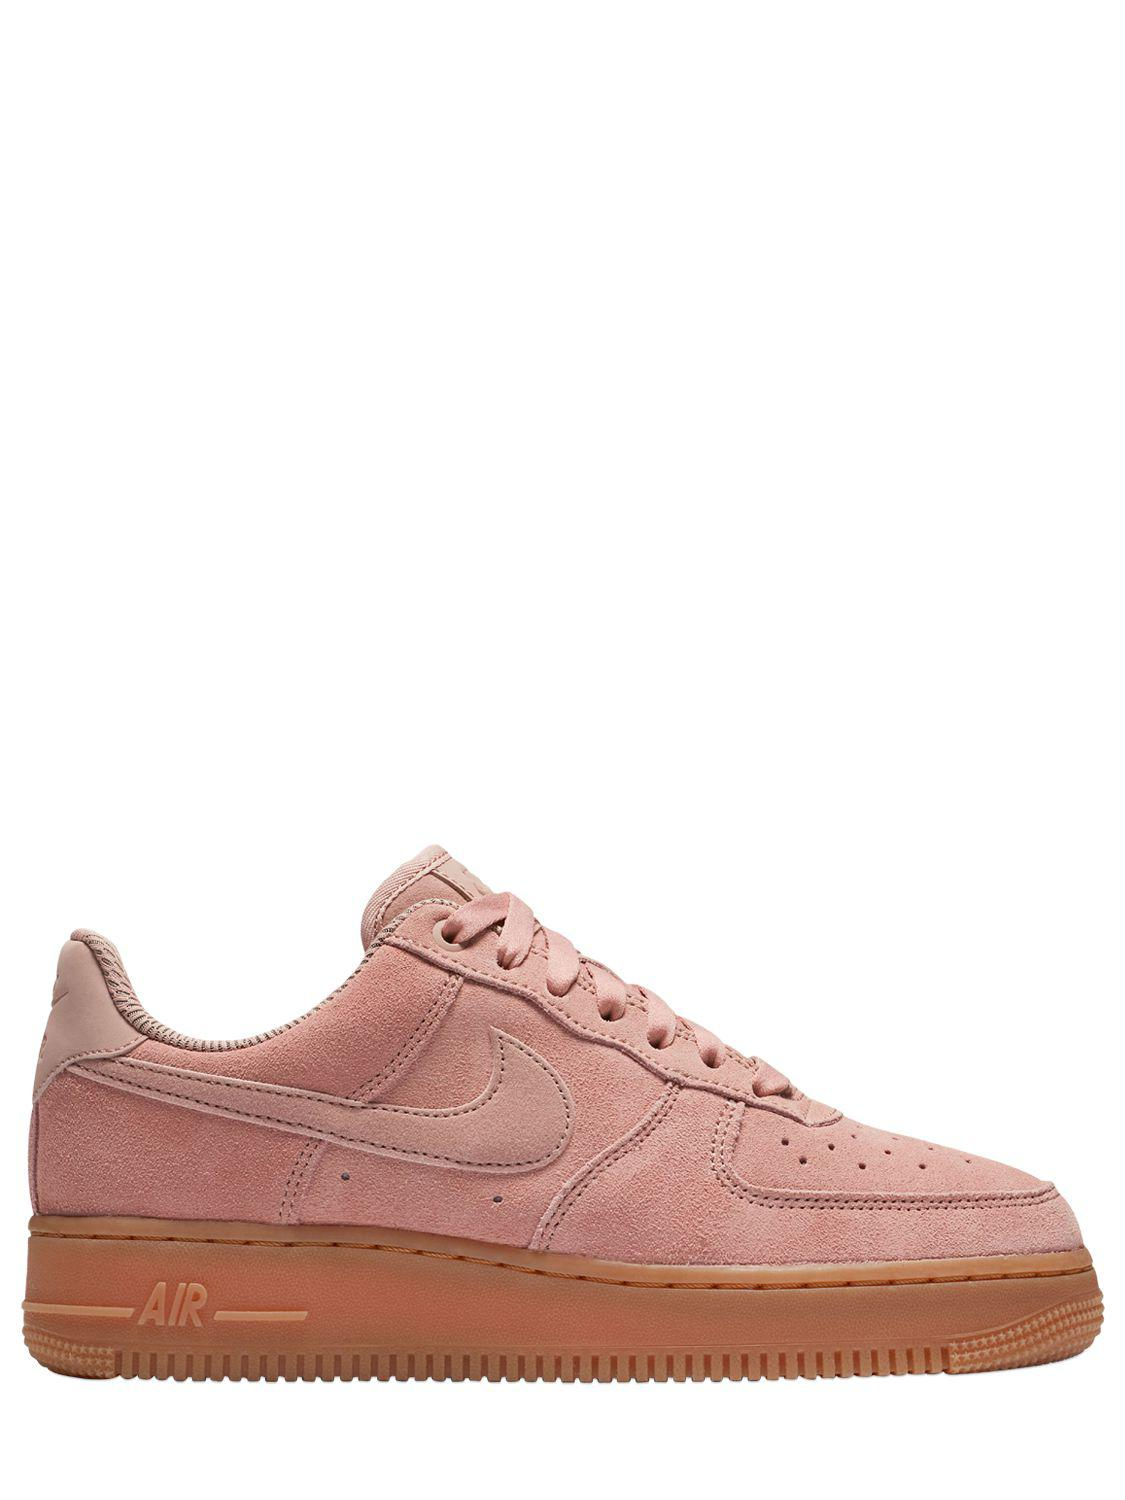 lyst nike air force 1 suede to gum sneakers in pink save 20. Black Bedroom Furniture Sets. Home Design Ideas